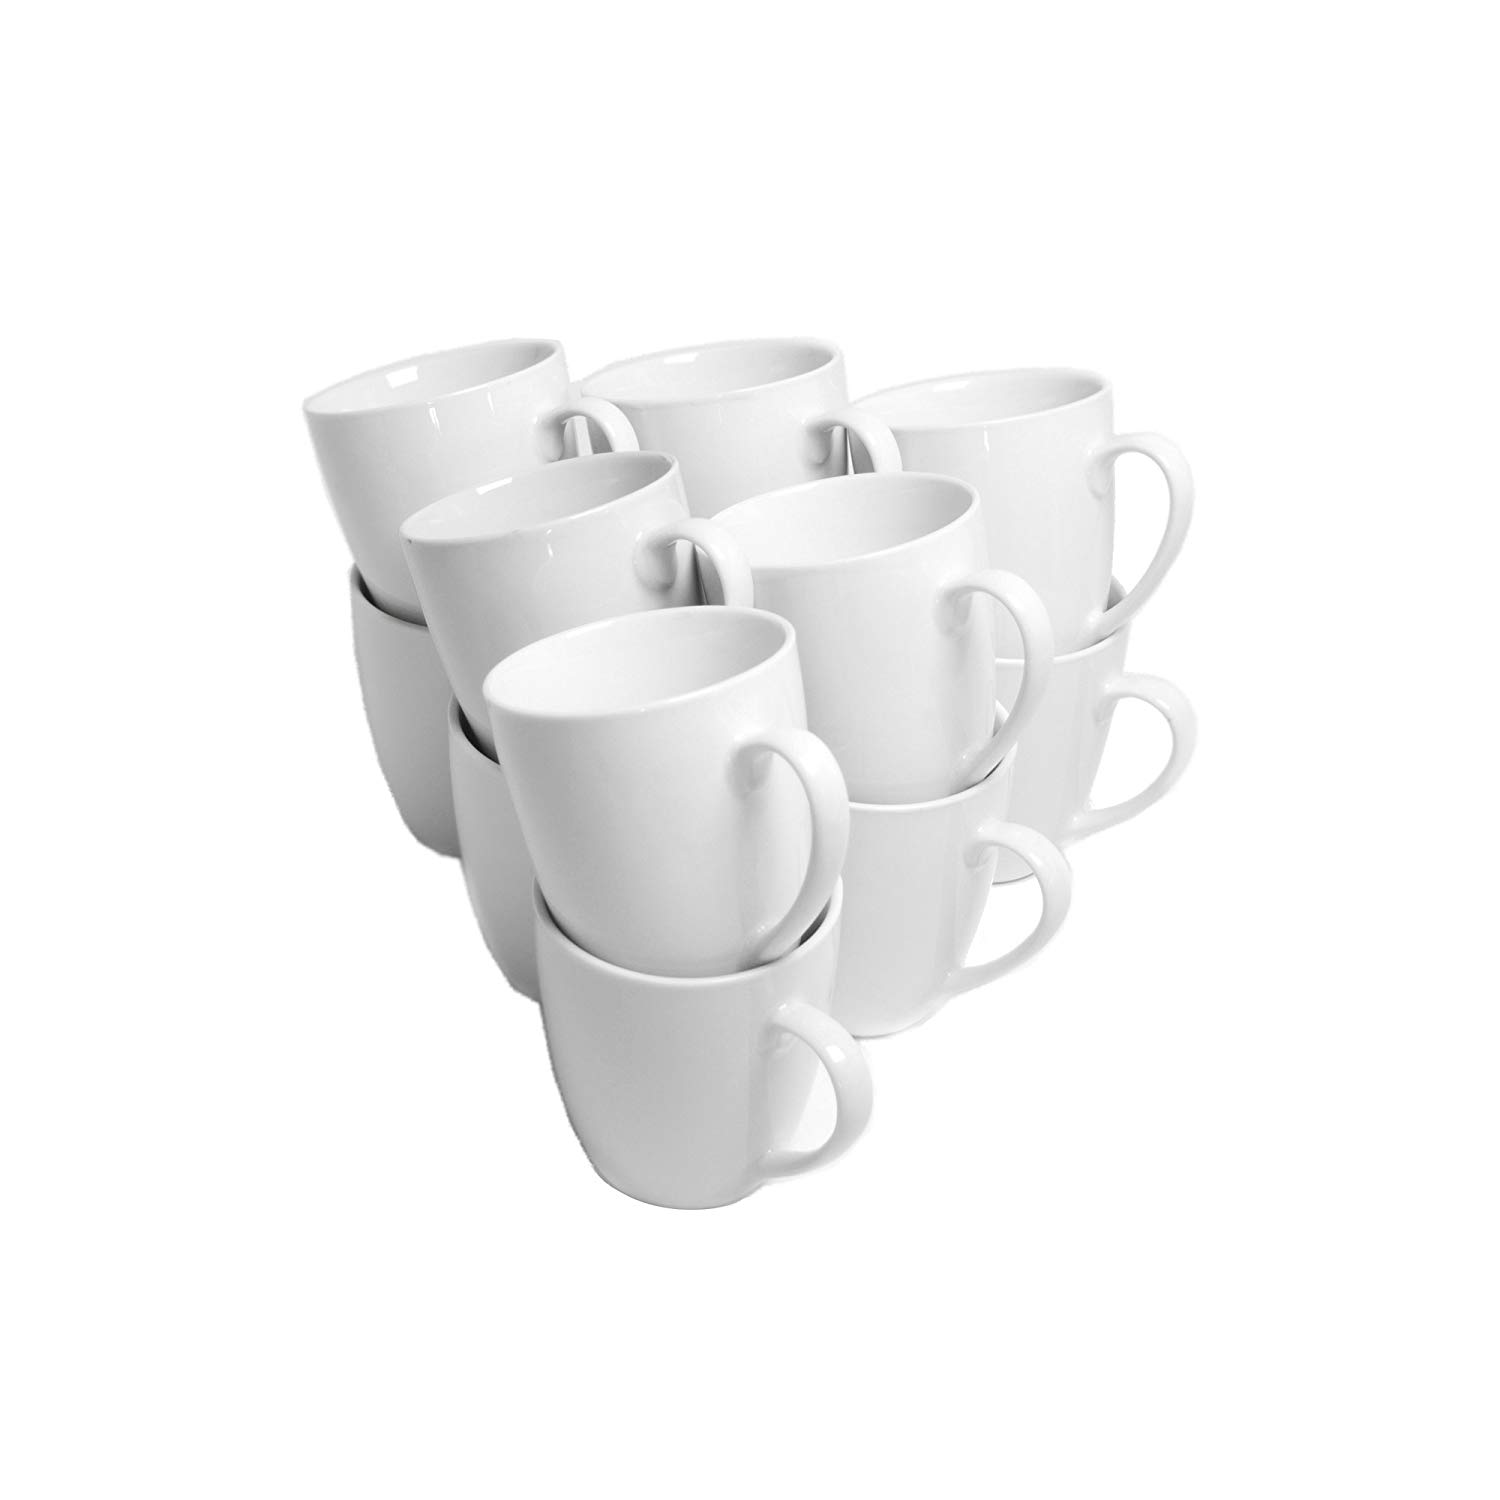 Strawberry street catering set 10-ounce mug